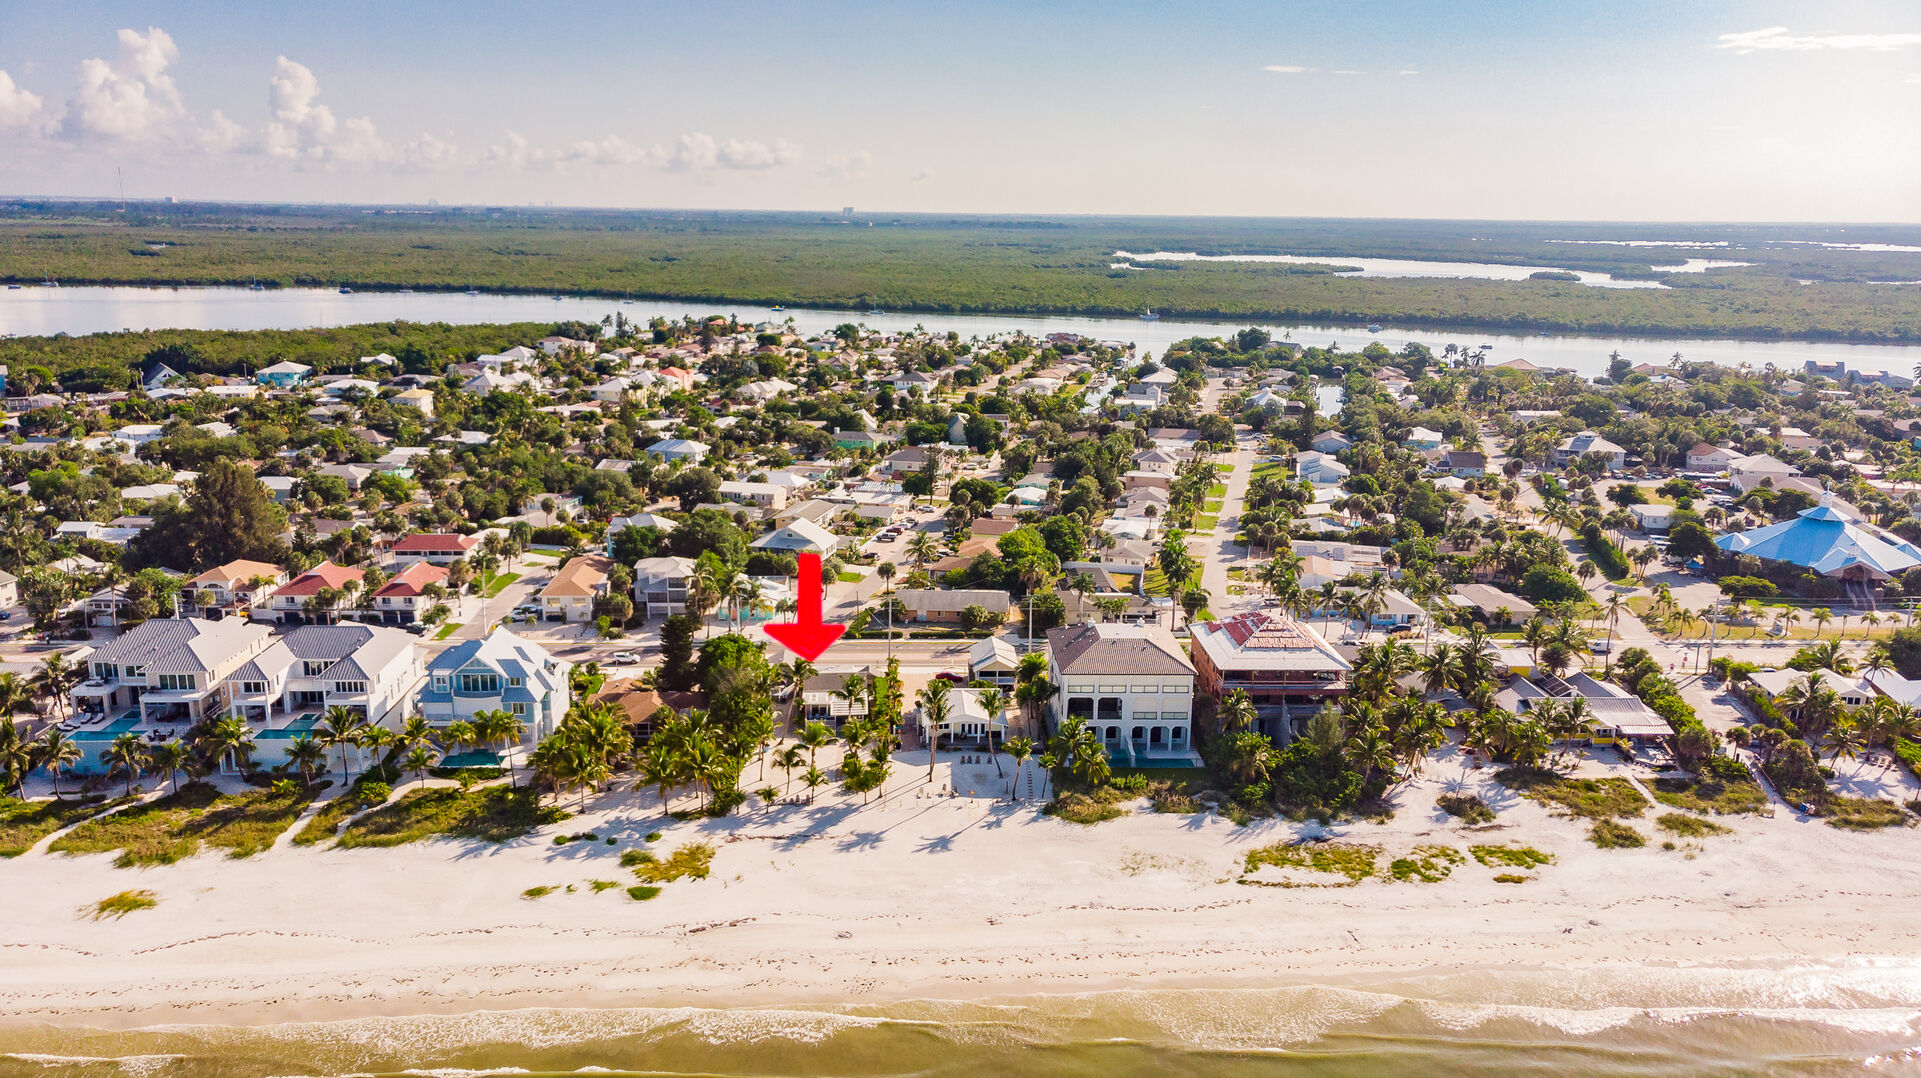 Private Beach House Rental in Florida Aerial View From Ocean